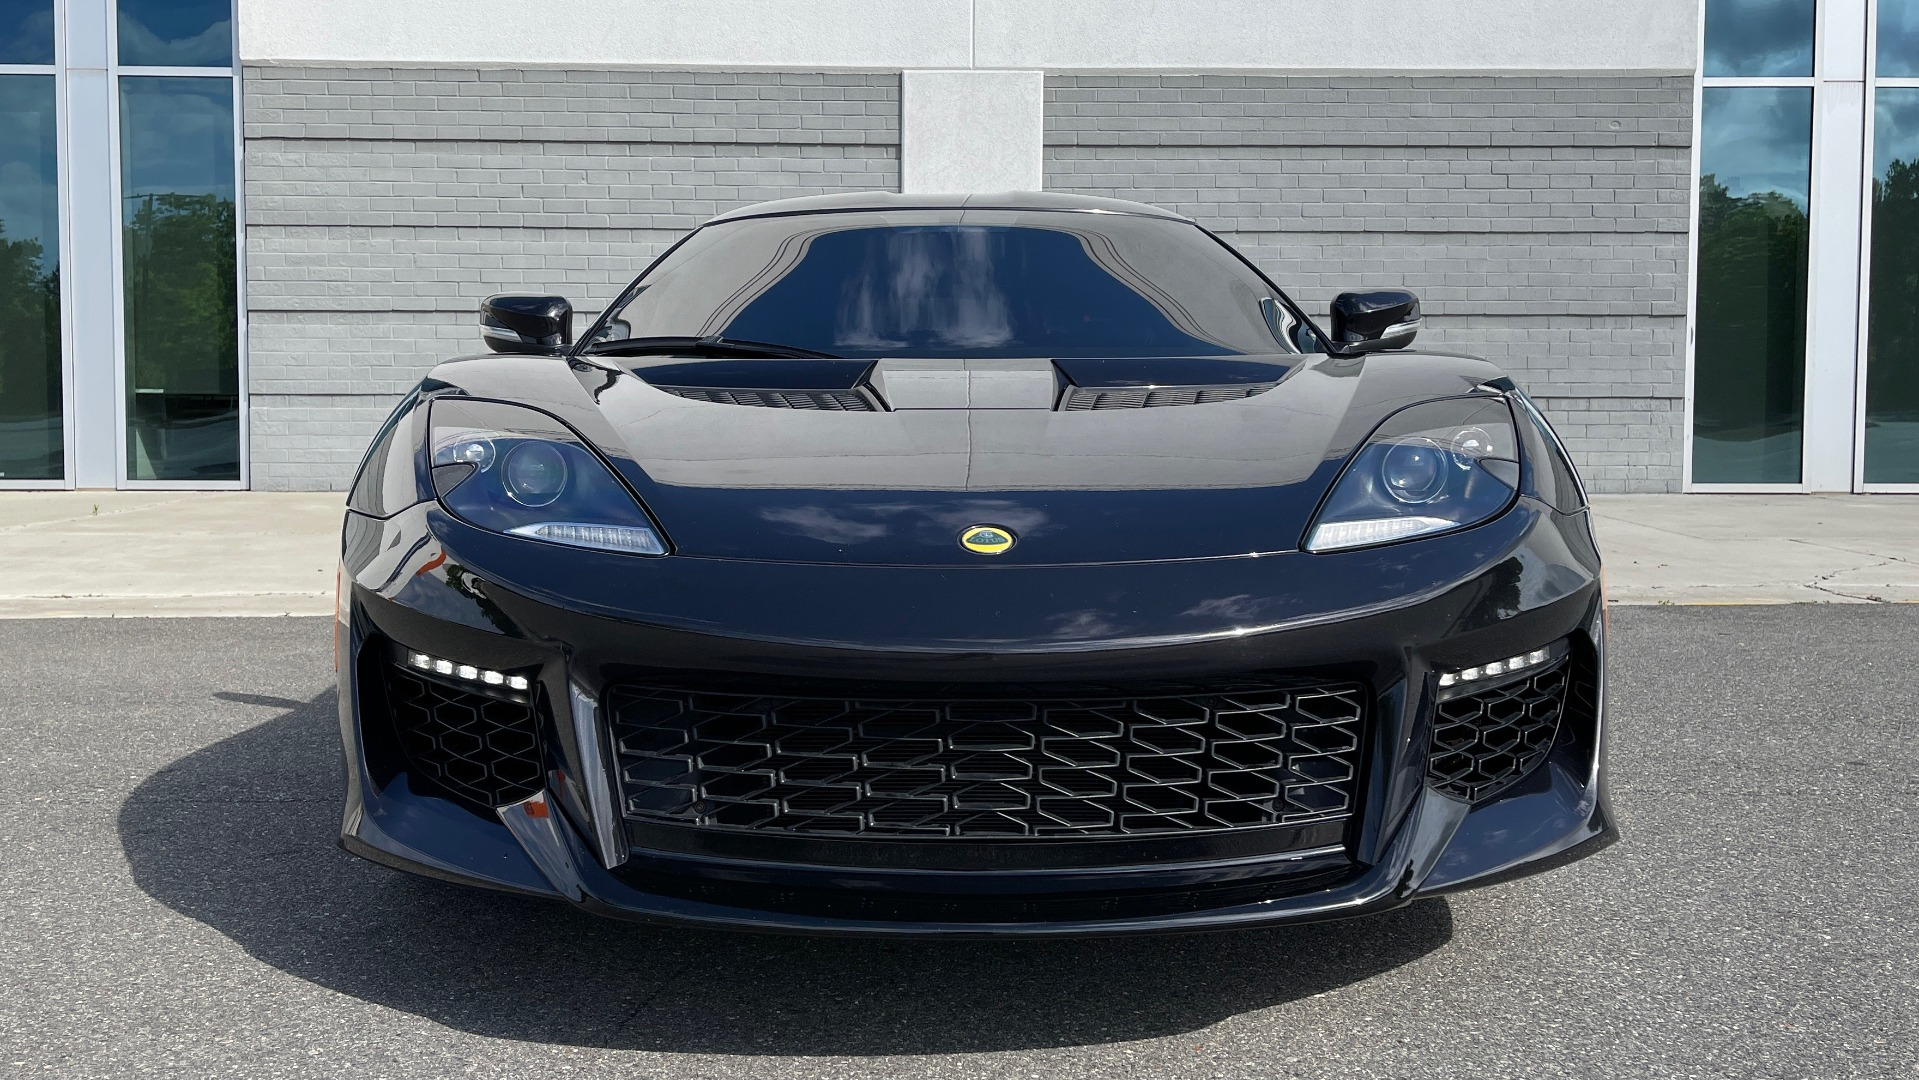 Used 2017 Lotus EVORA 400 COUPE / 3.5L SUPERCHARGED V6 / PDL SHIFT AUTO / NAV / REARVIEW for sale Sold at Formula Imports in Charlotte NC 28227 8